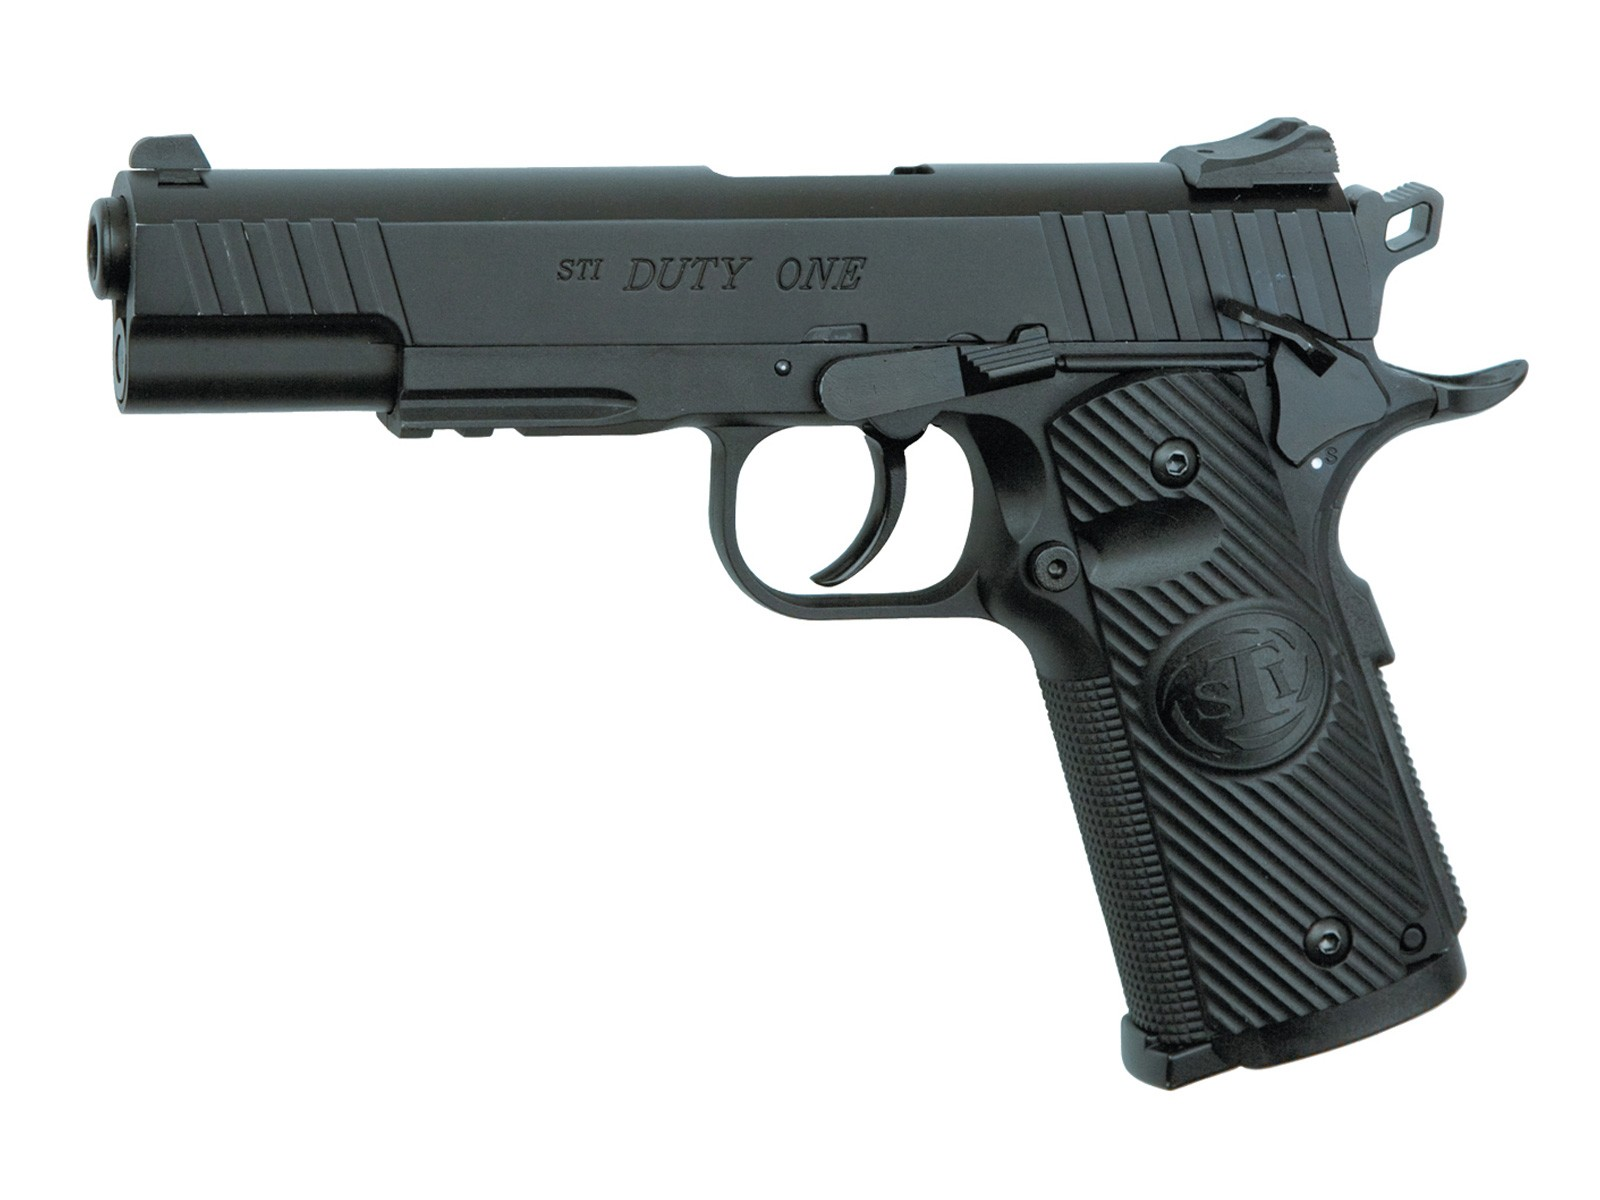 STI Duty One CO2 BB Pistol 0.177